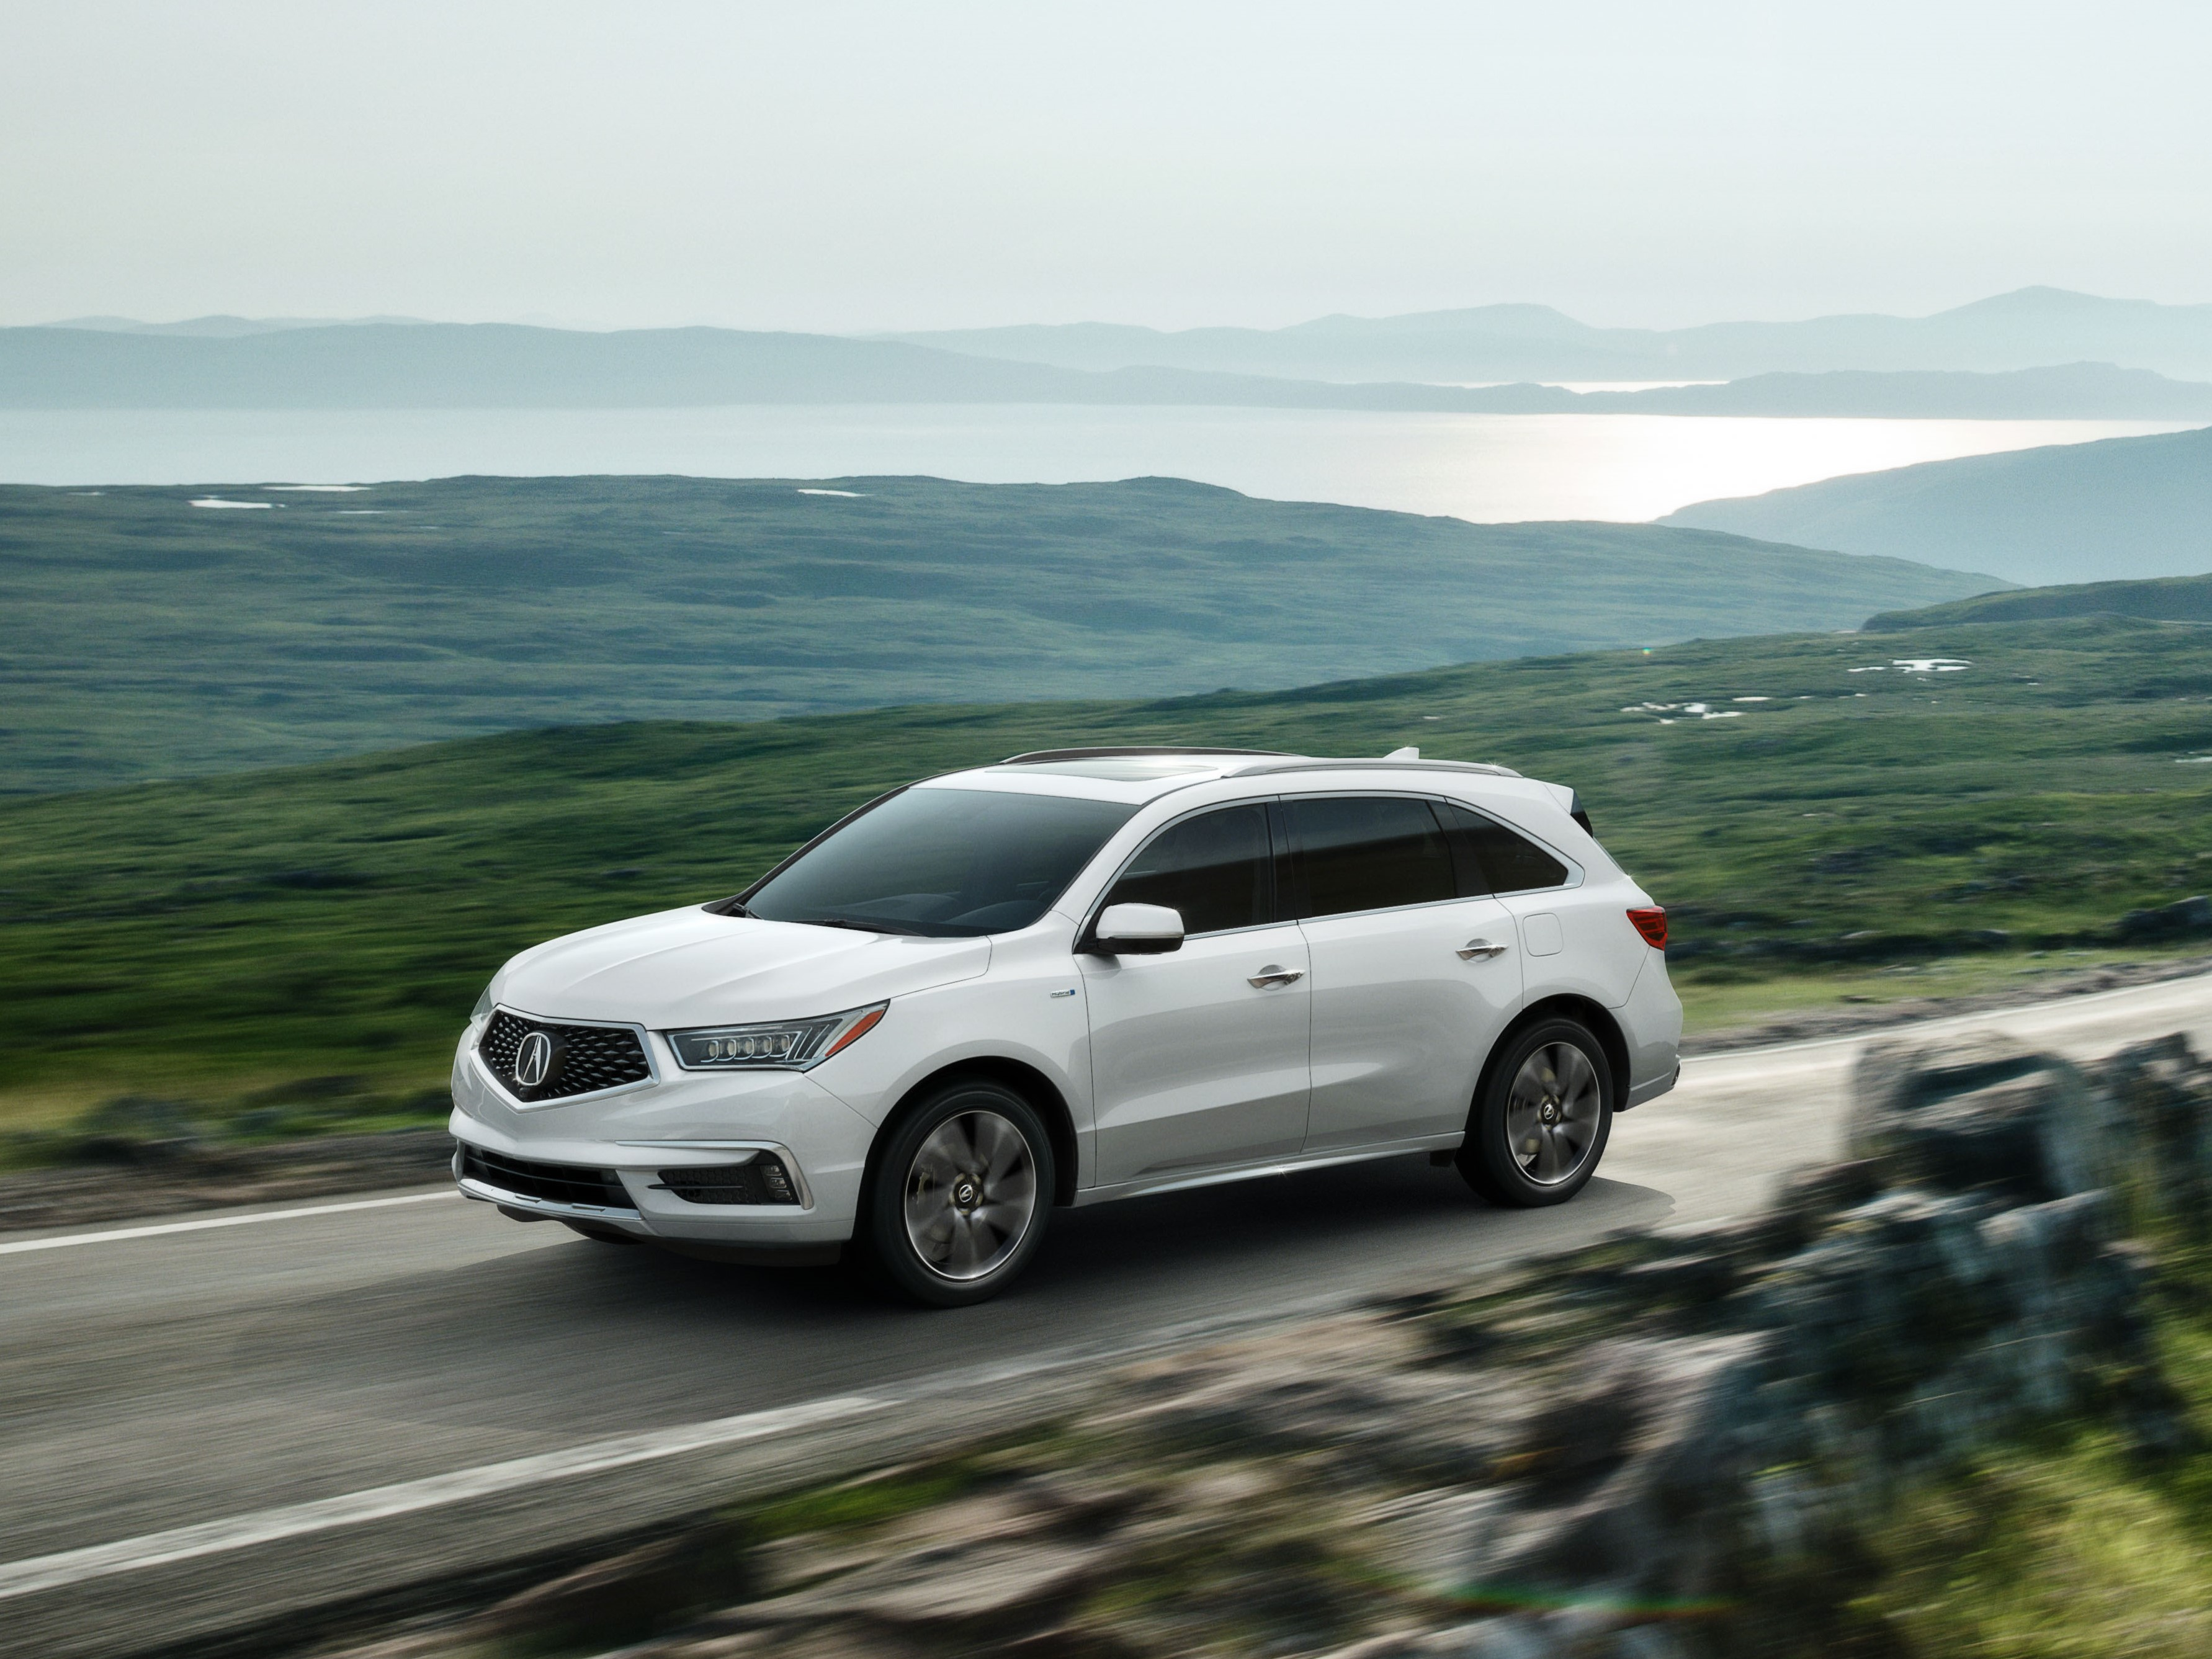 parked enthusiast cost while discussion caught forums fire acura community mdx acurazine